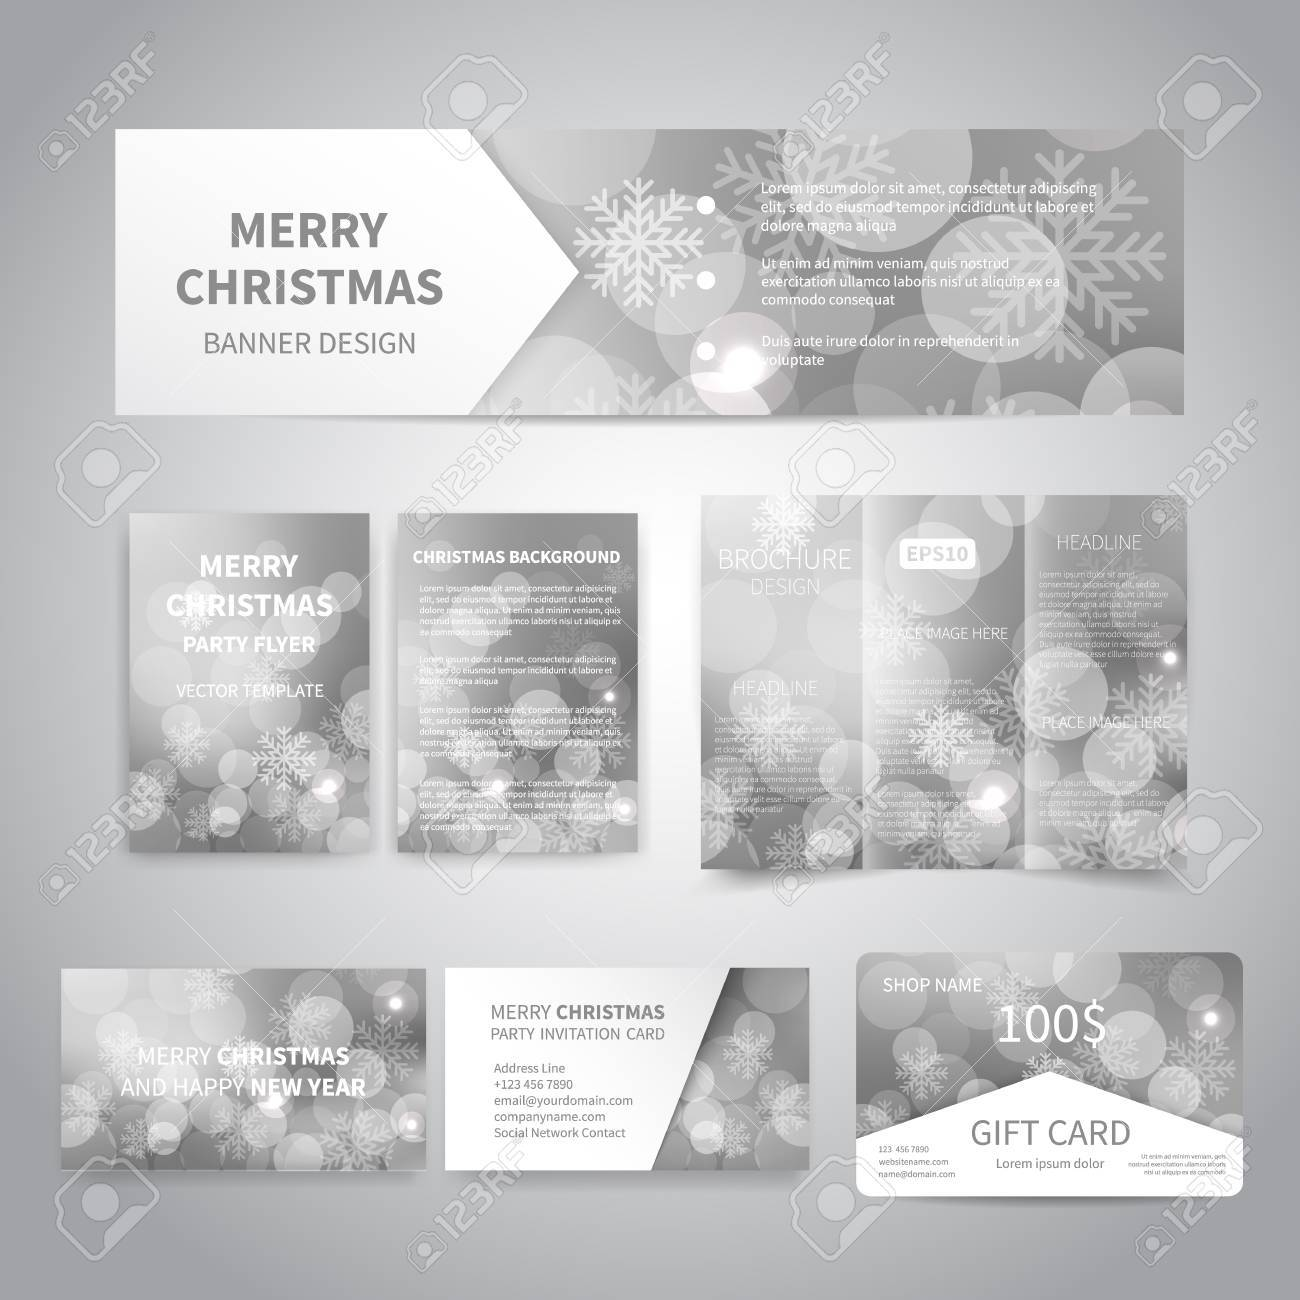 Merry Christmas Banner, Flyers, Brochure, Cards, Gift Card Design ...